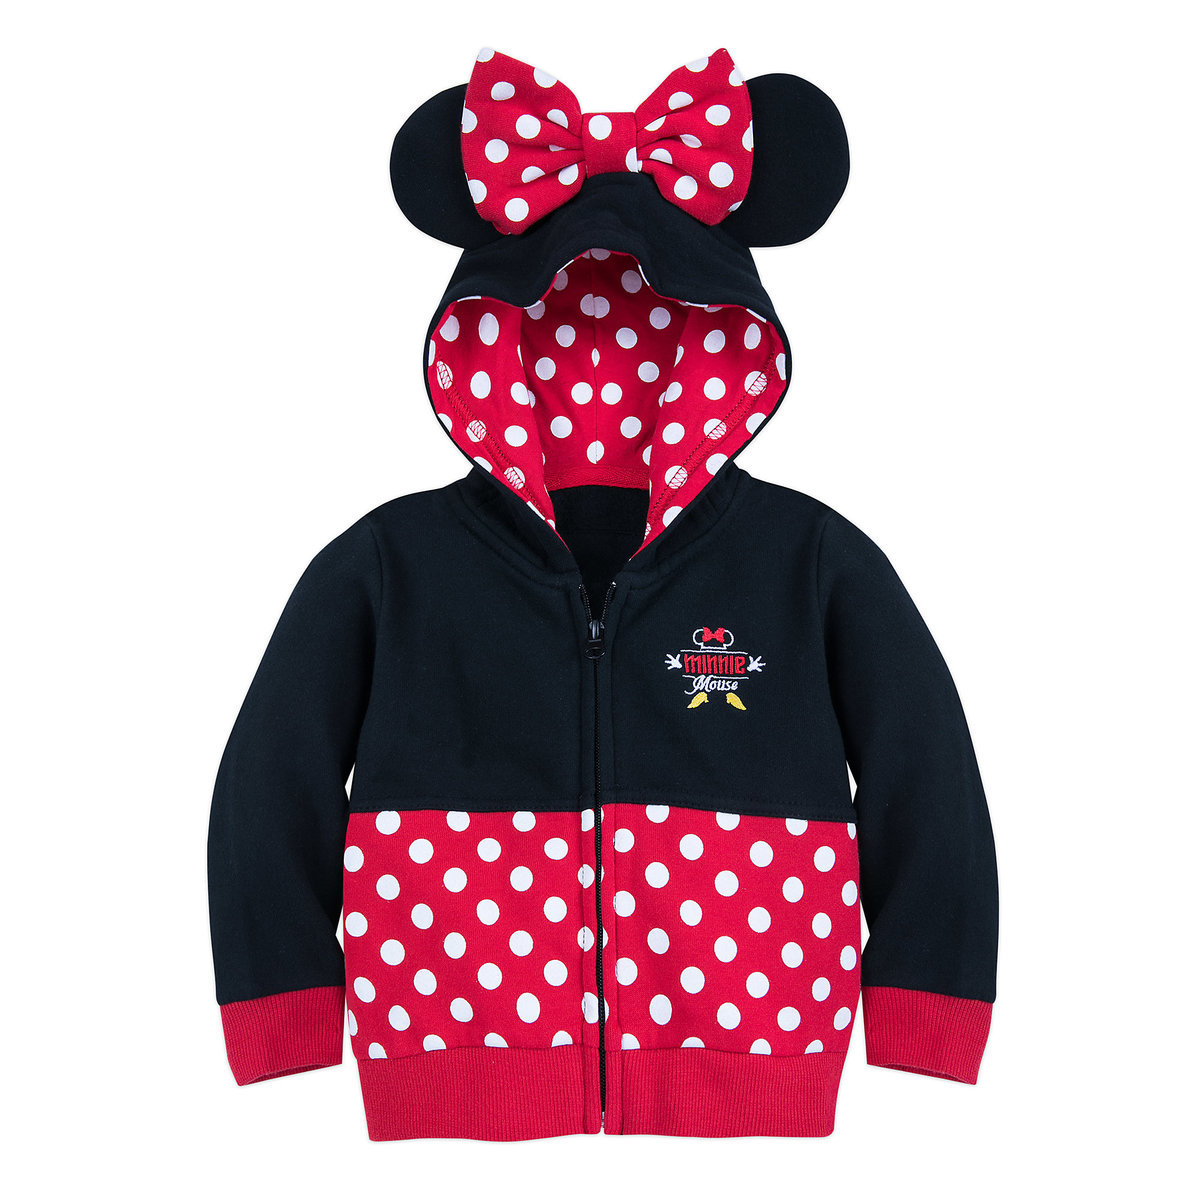 0afd652a1 Product Image of I Am Minnie Mouse Zip-Up Hoodie for Baby # 1